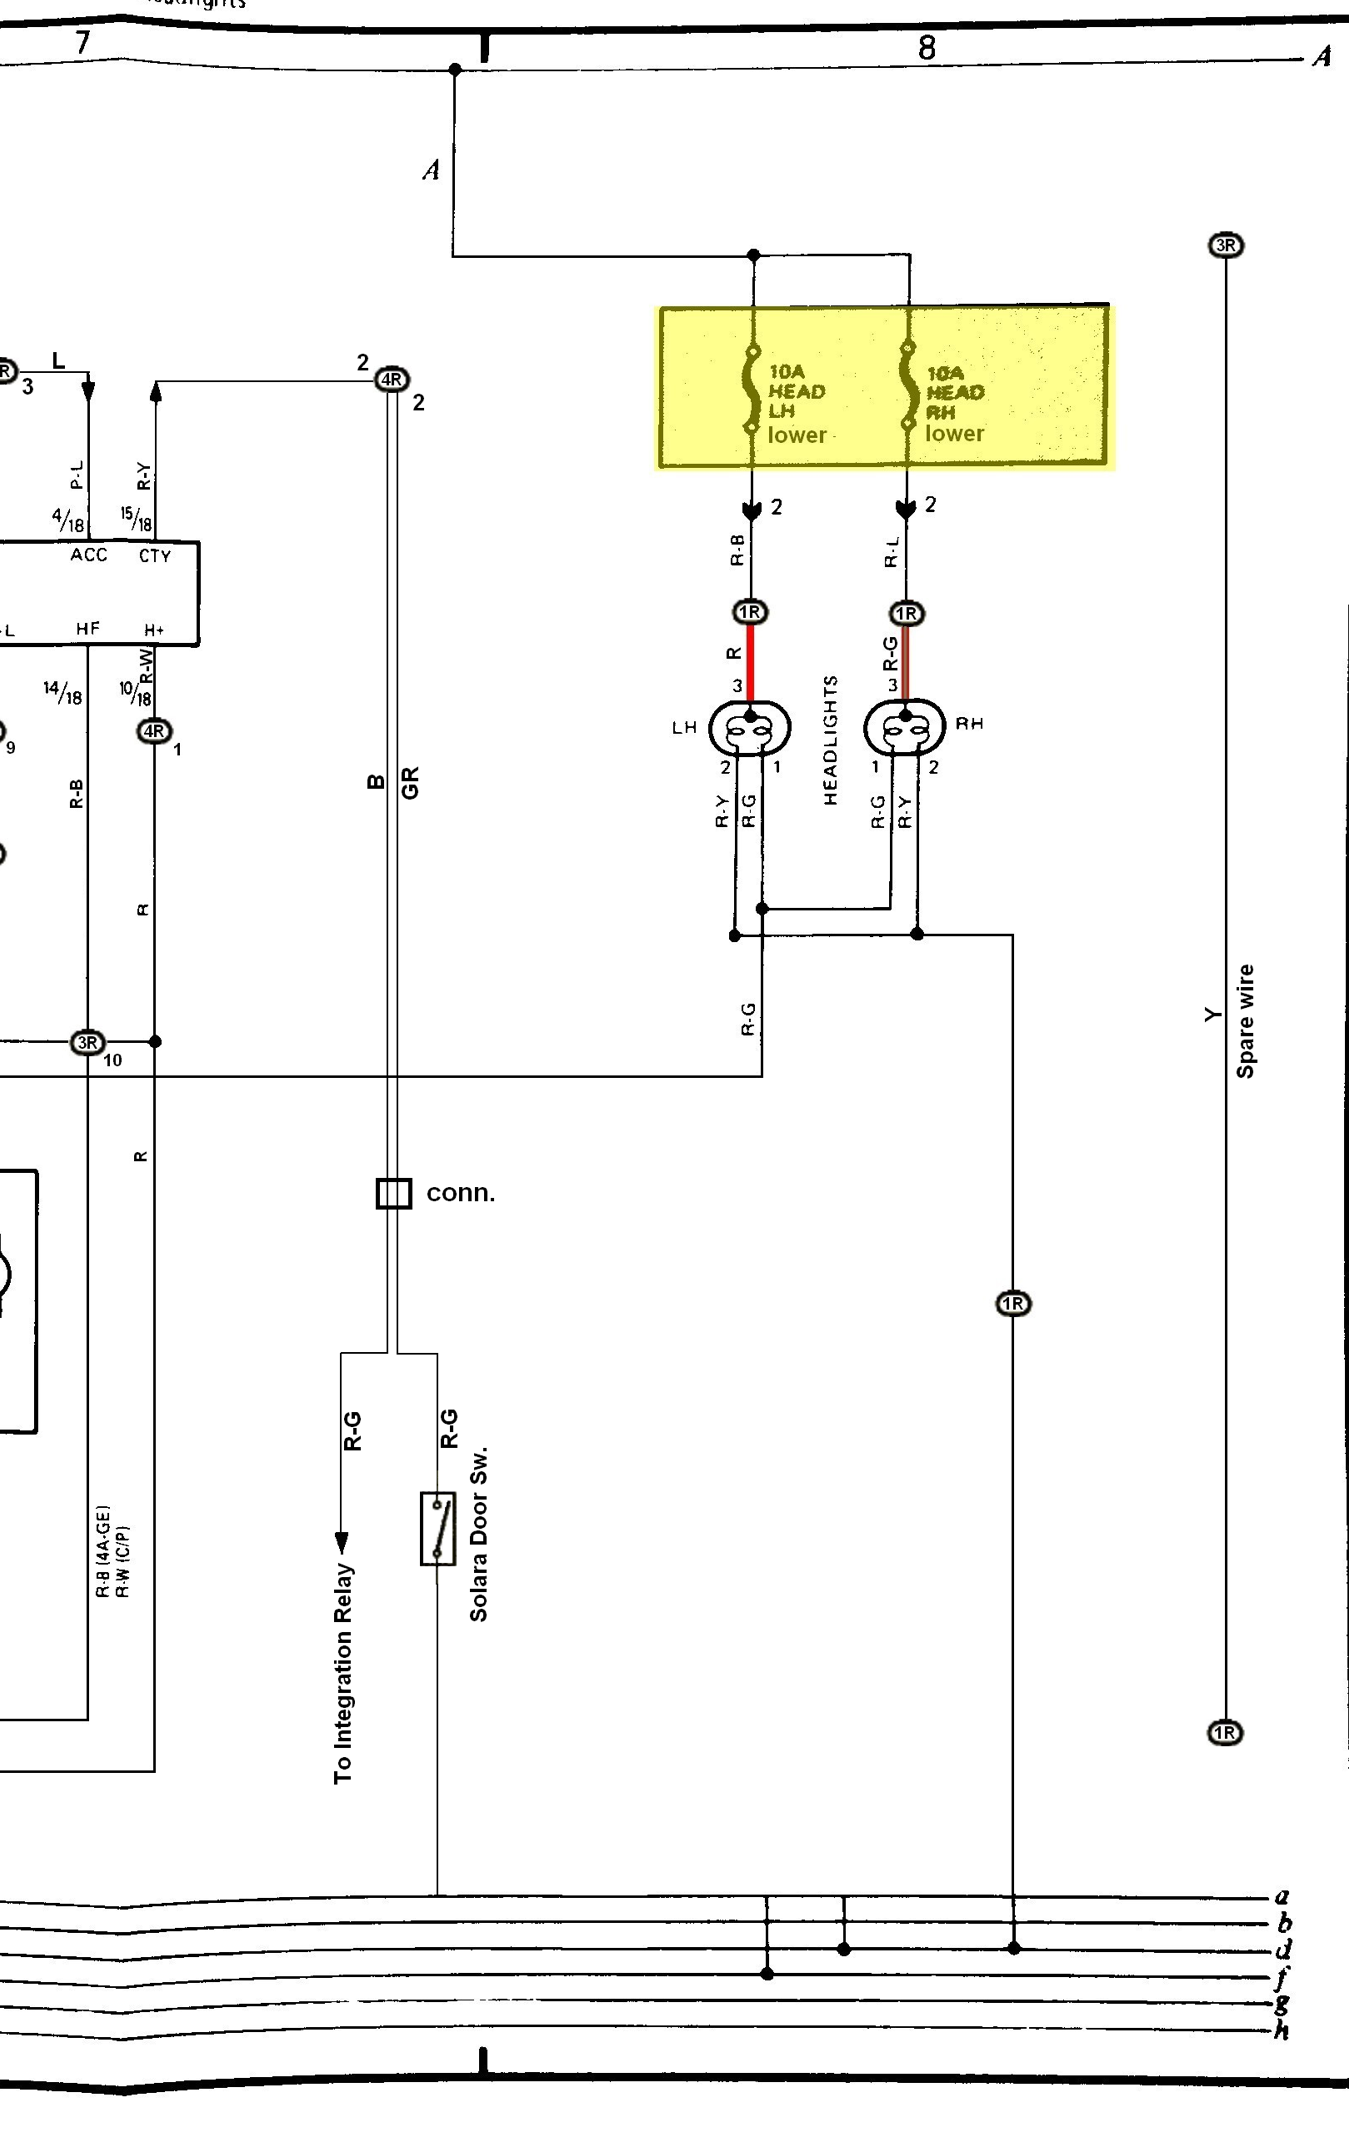 headlights_hybrid_schematic_panel4.png